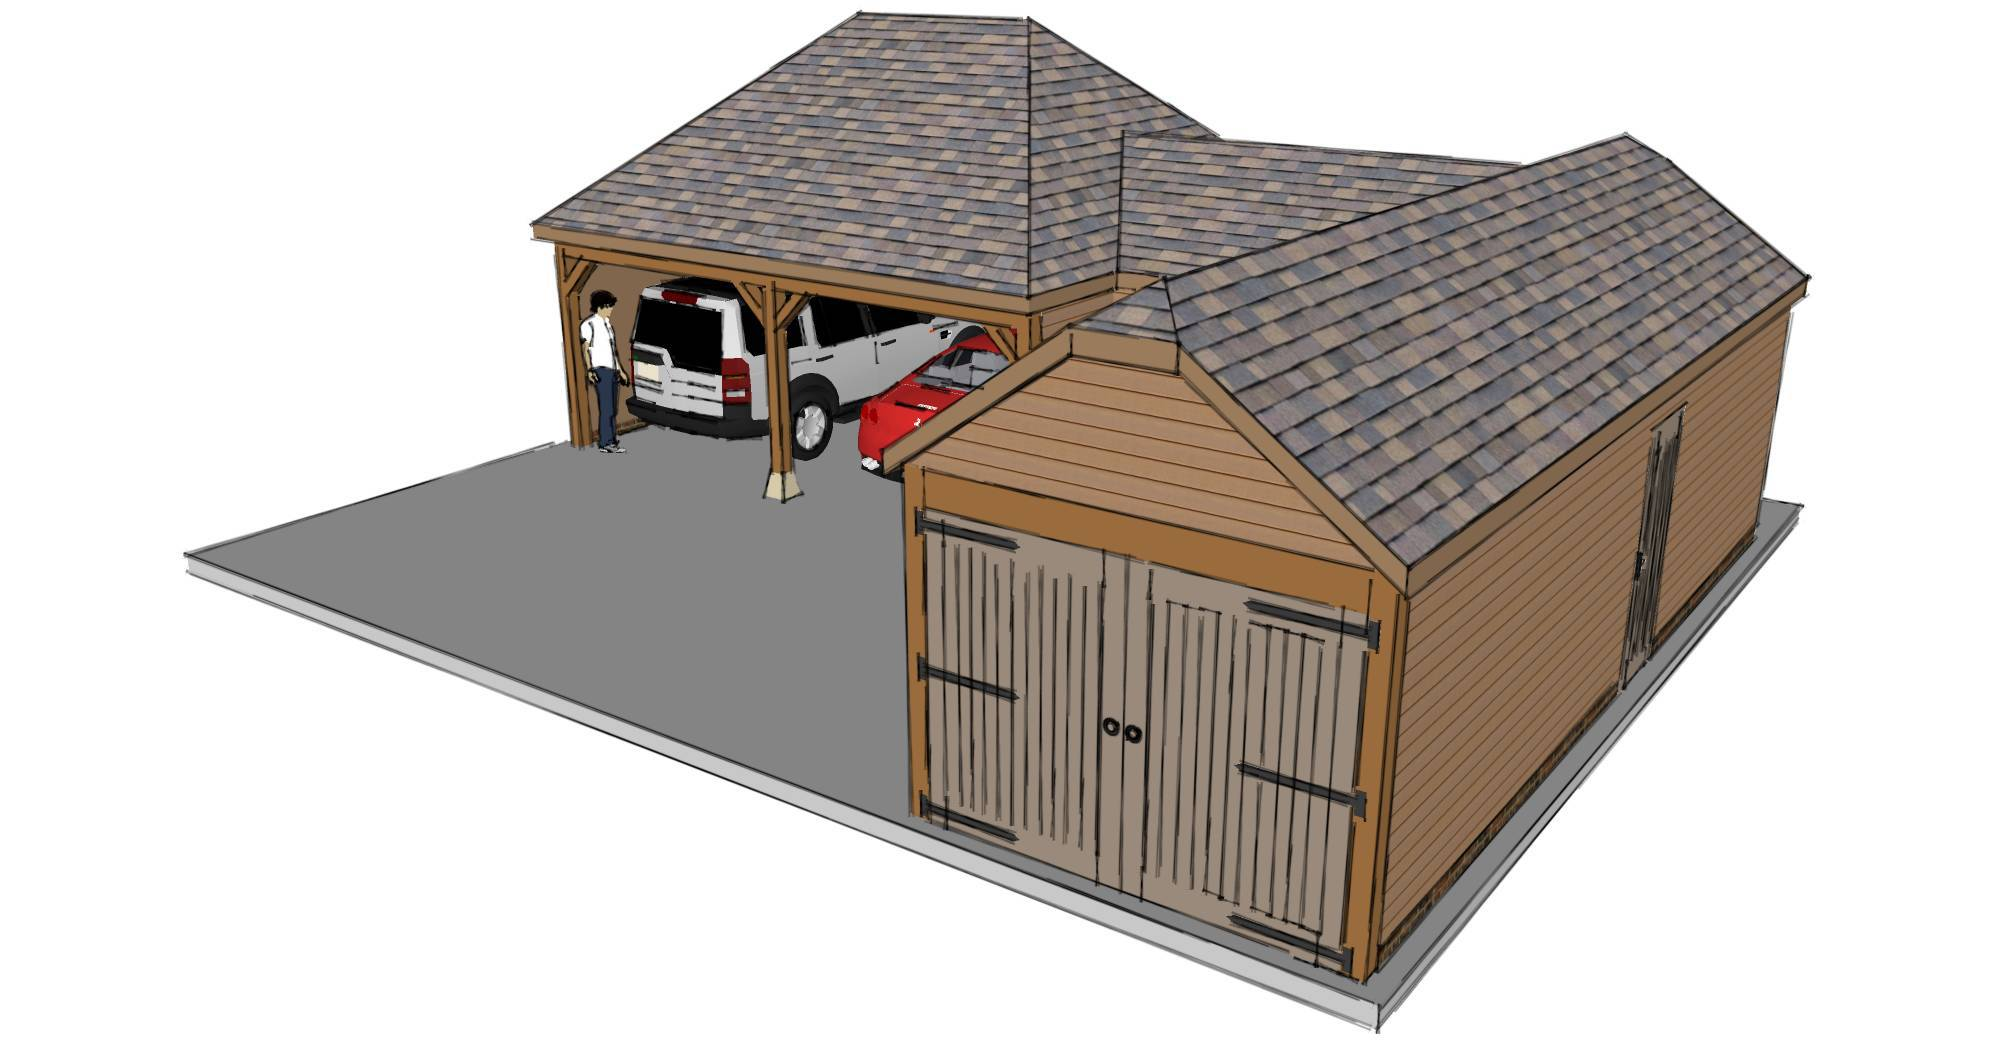 L shaped garage scheme the stable company for Barn shaped garage